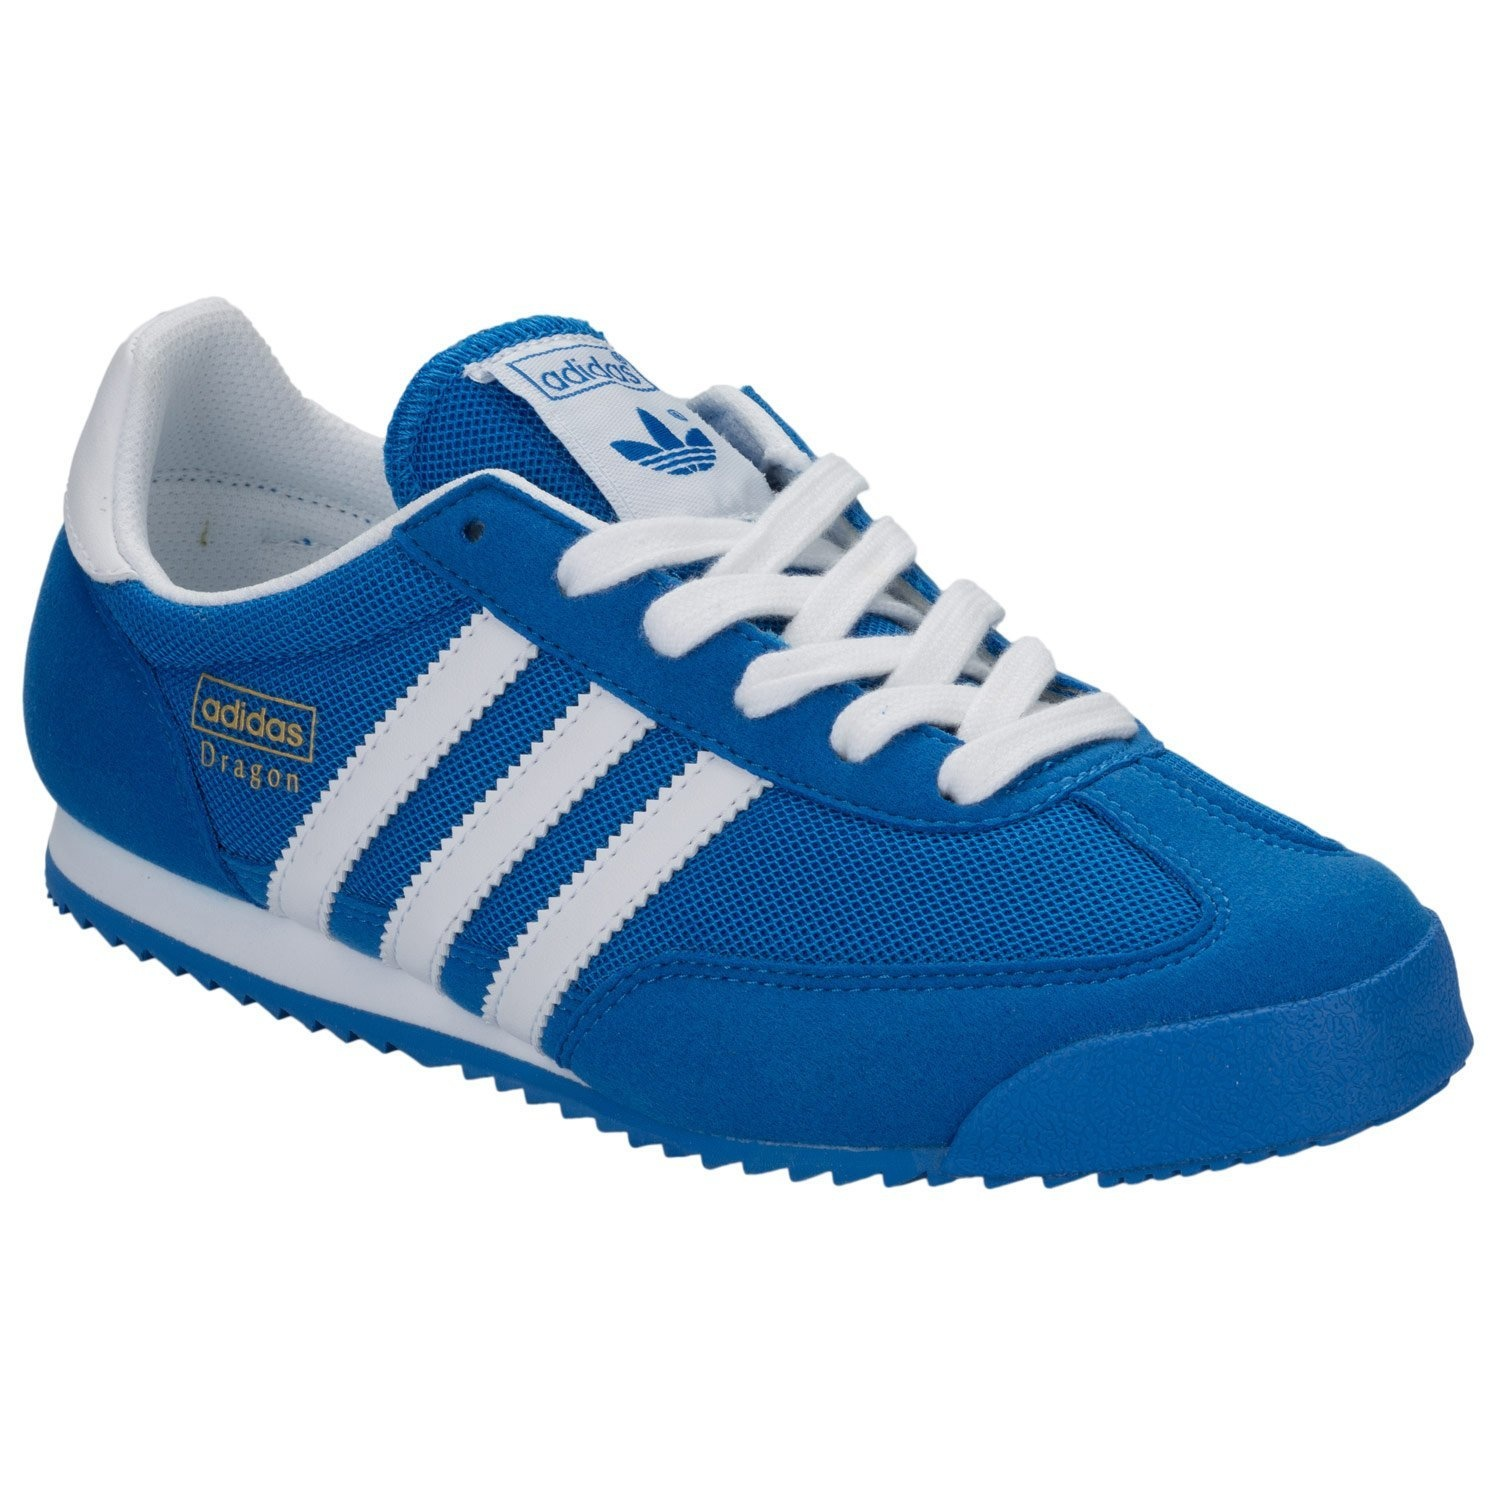 the best attitude 139ab fdad0 Adidas Dragon Shoes Shoes Buy Online from Fishpond.co.nz